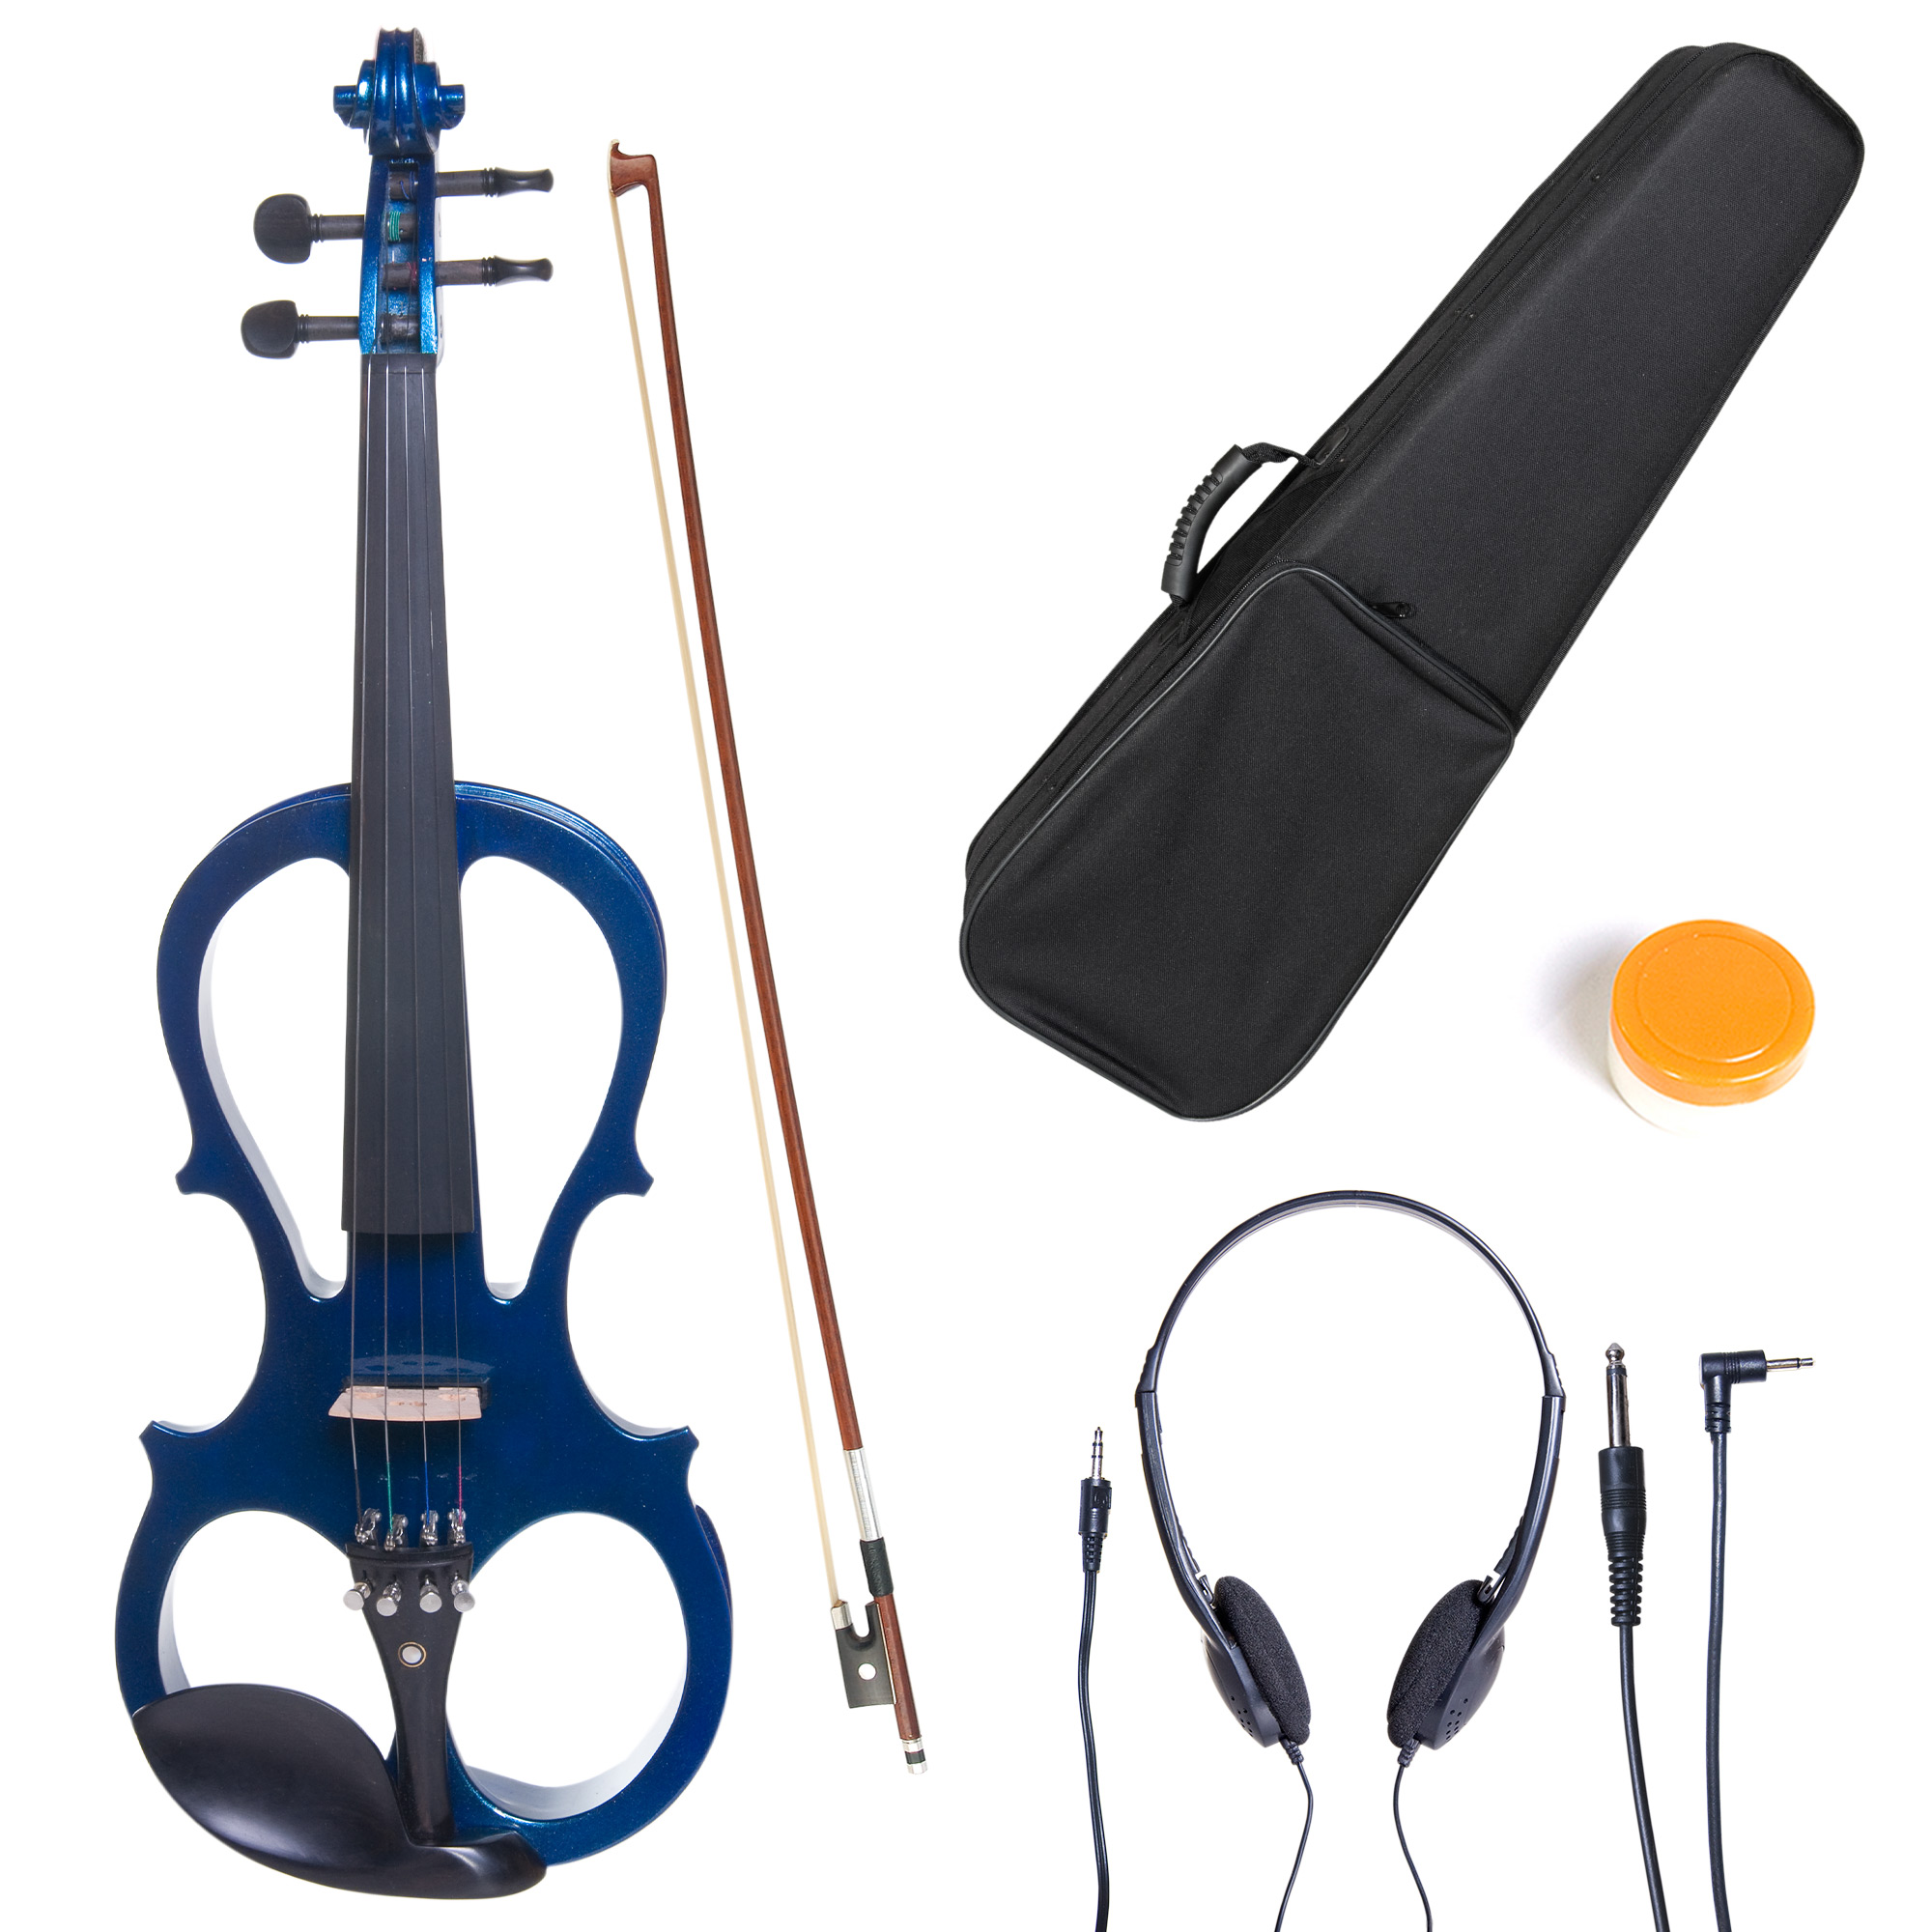 Cecilio Size 3/4 CEVN-1BL Solidwood Metallic Blue Electric/Silent Violin with Ebony Fittings